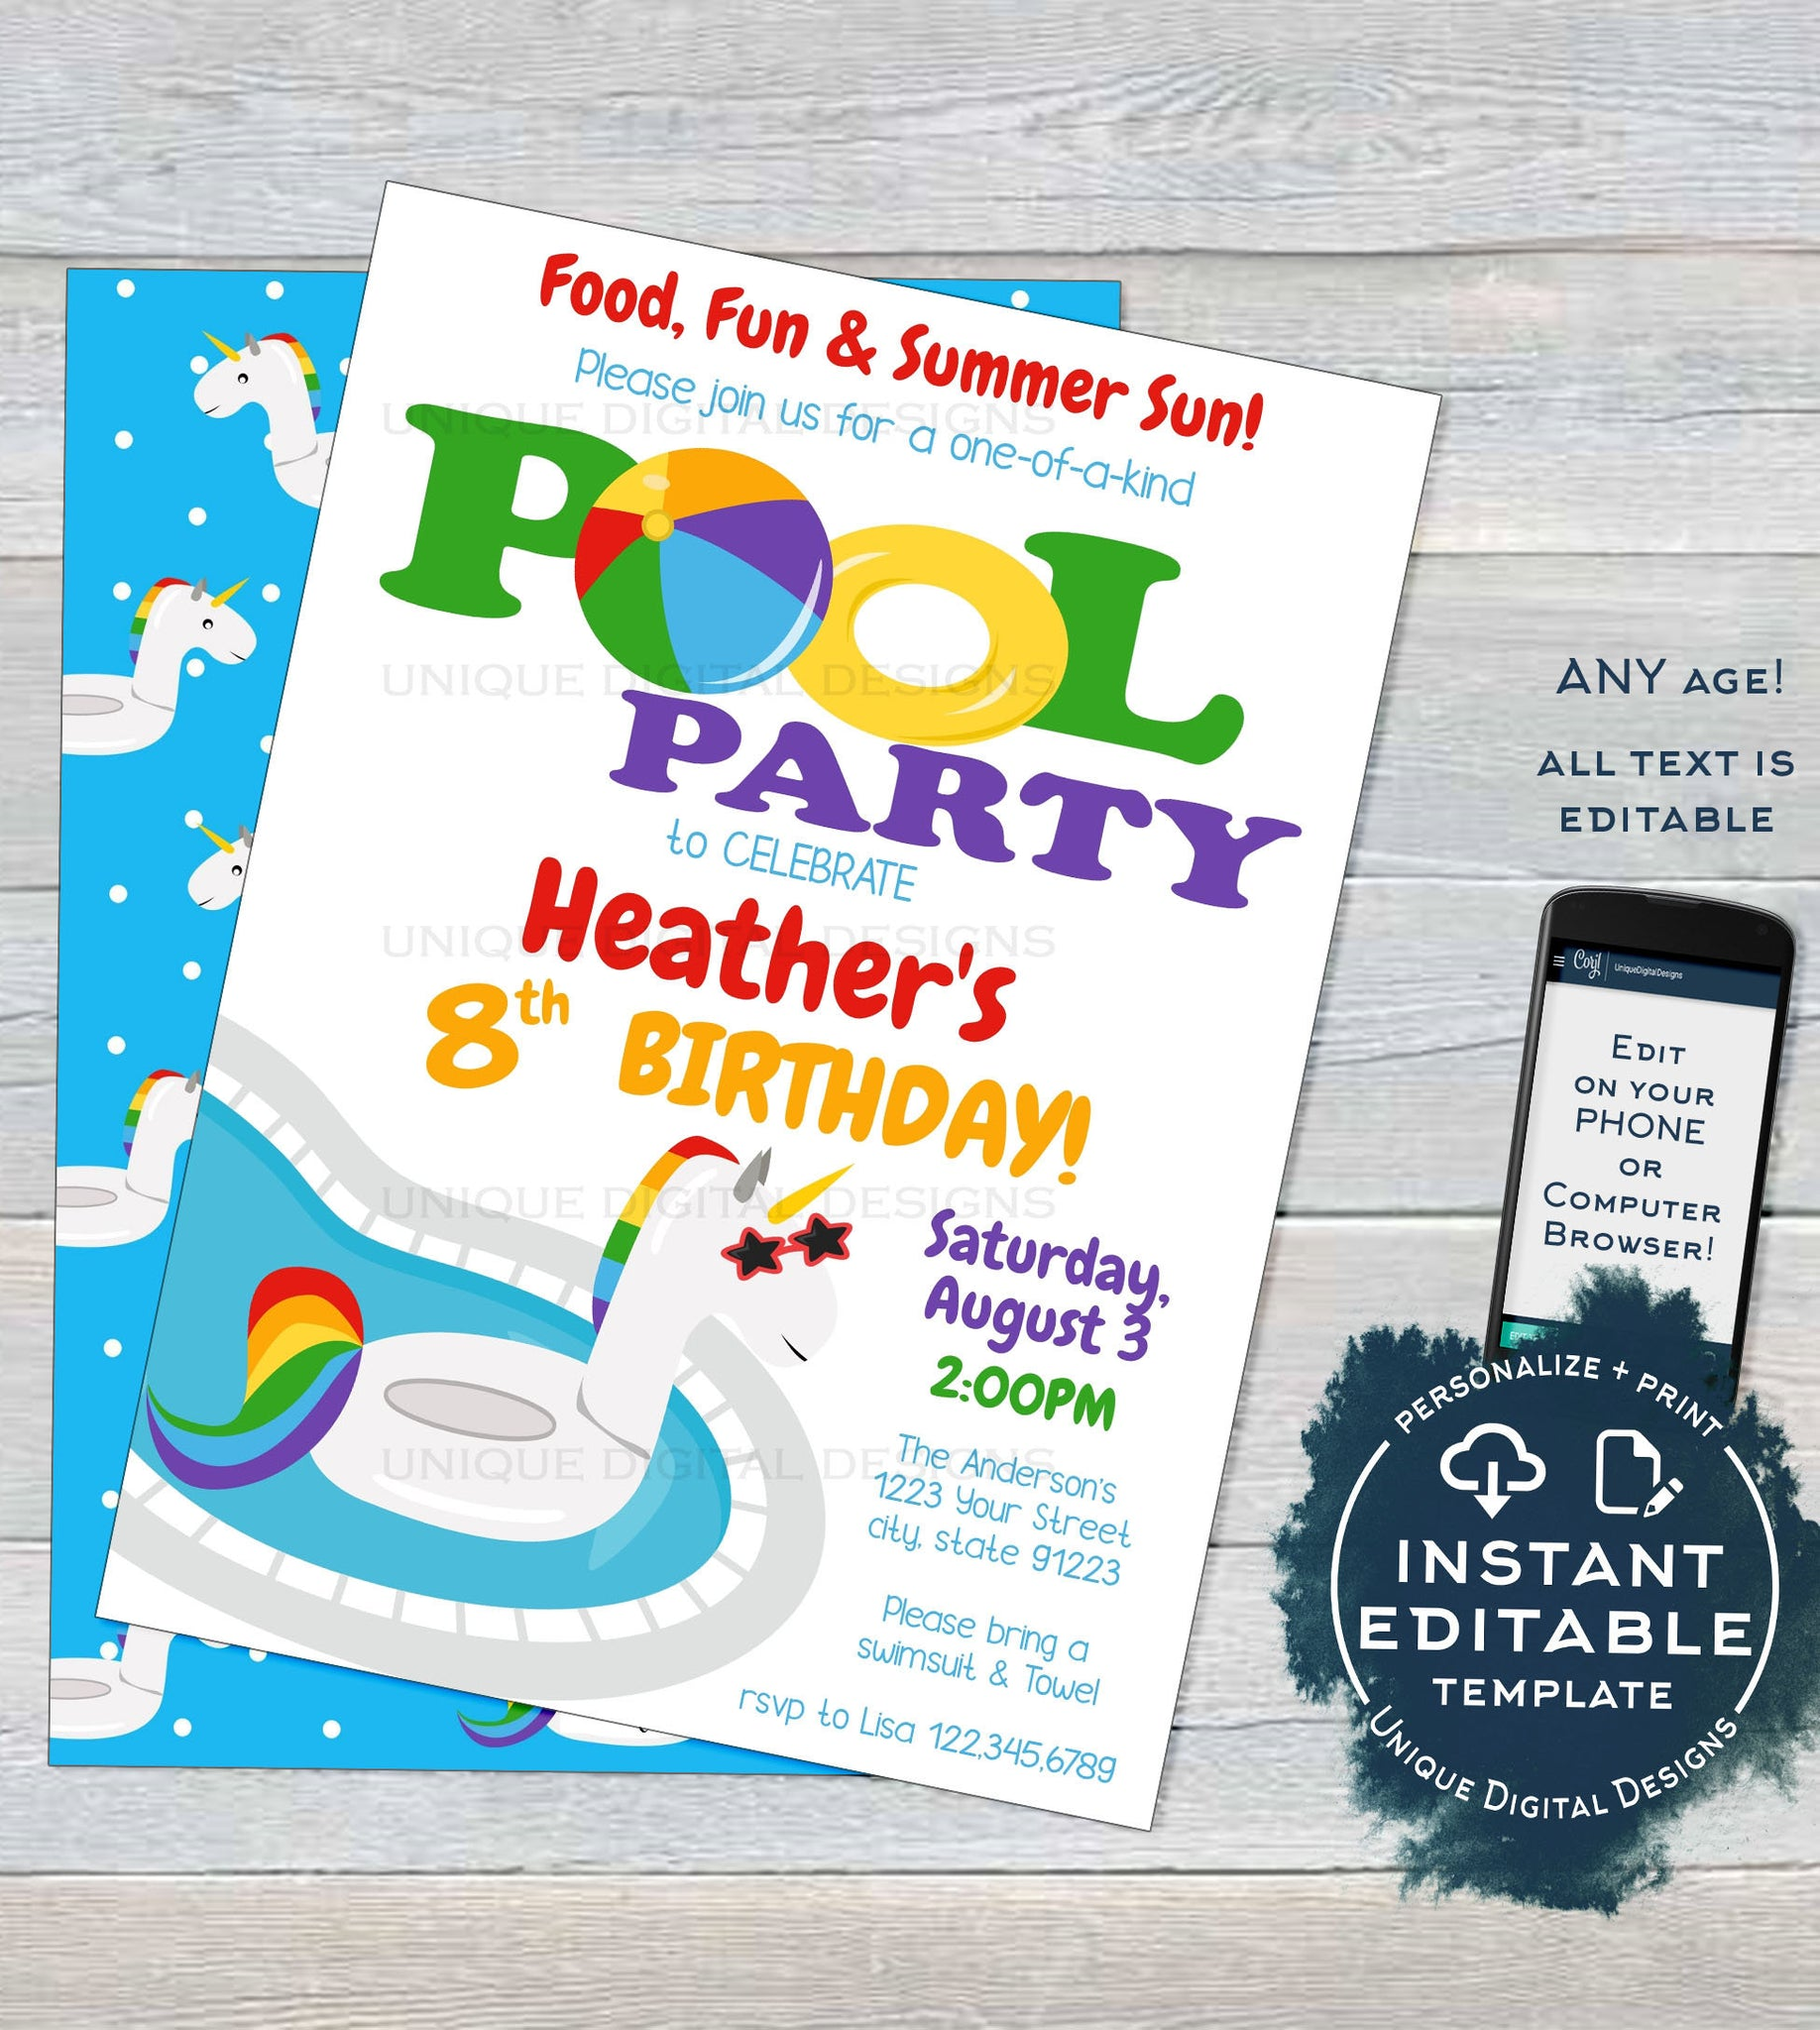 picture relating to Pool Party Printable referred to as Editable Pool Get together Invitation, Unicorn Birthday Pool Celebration